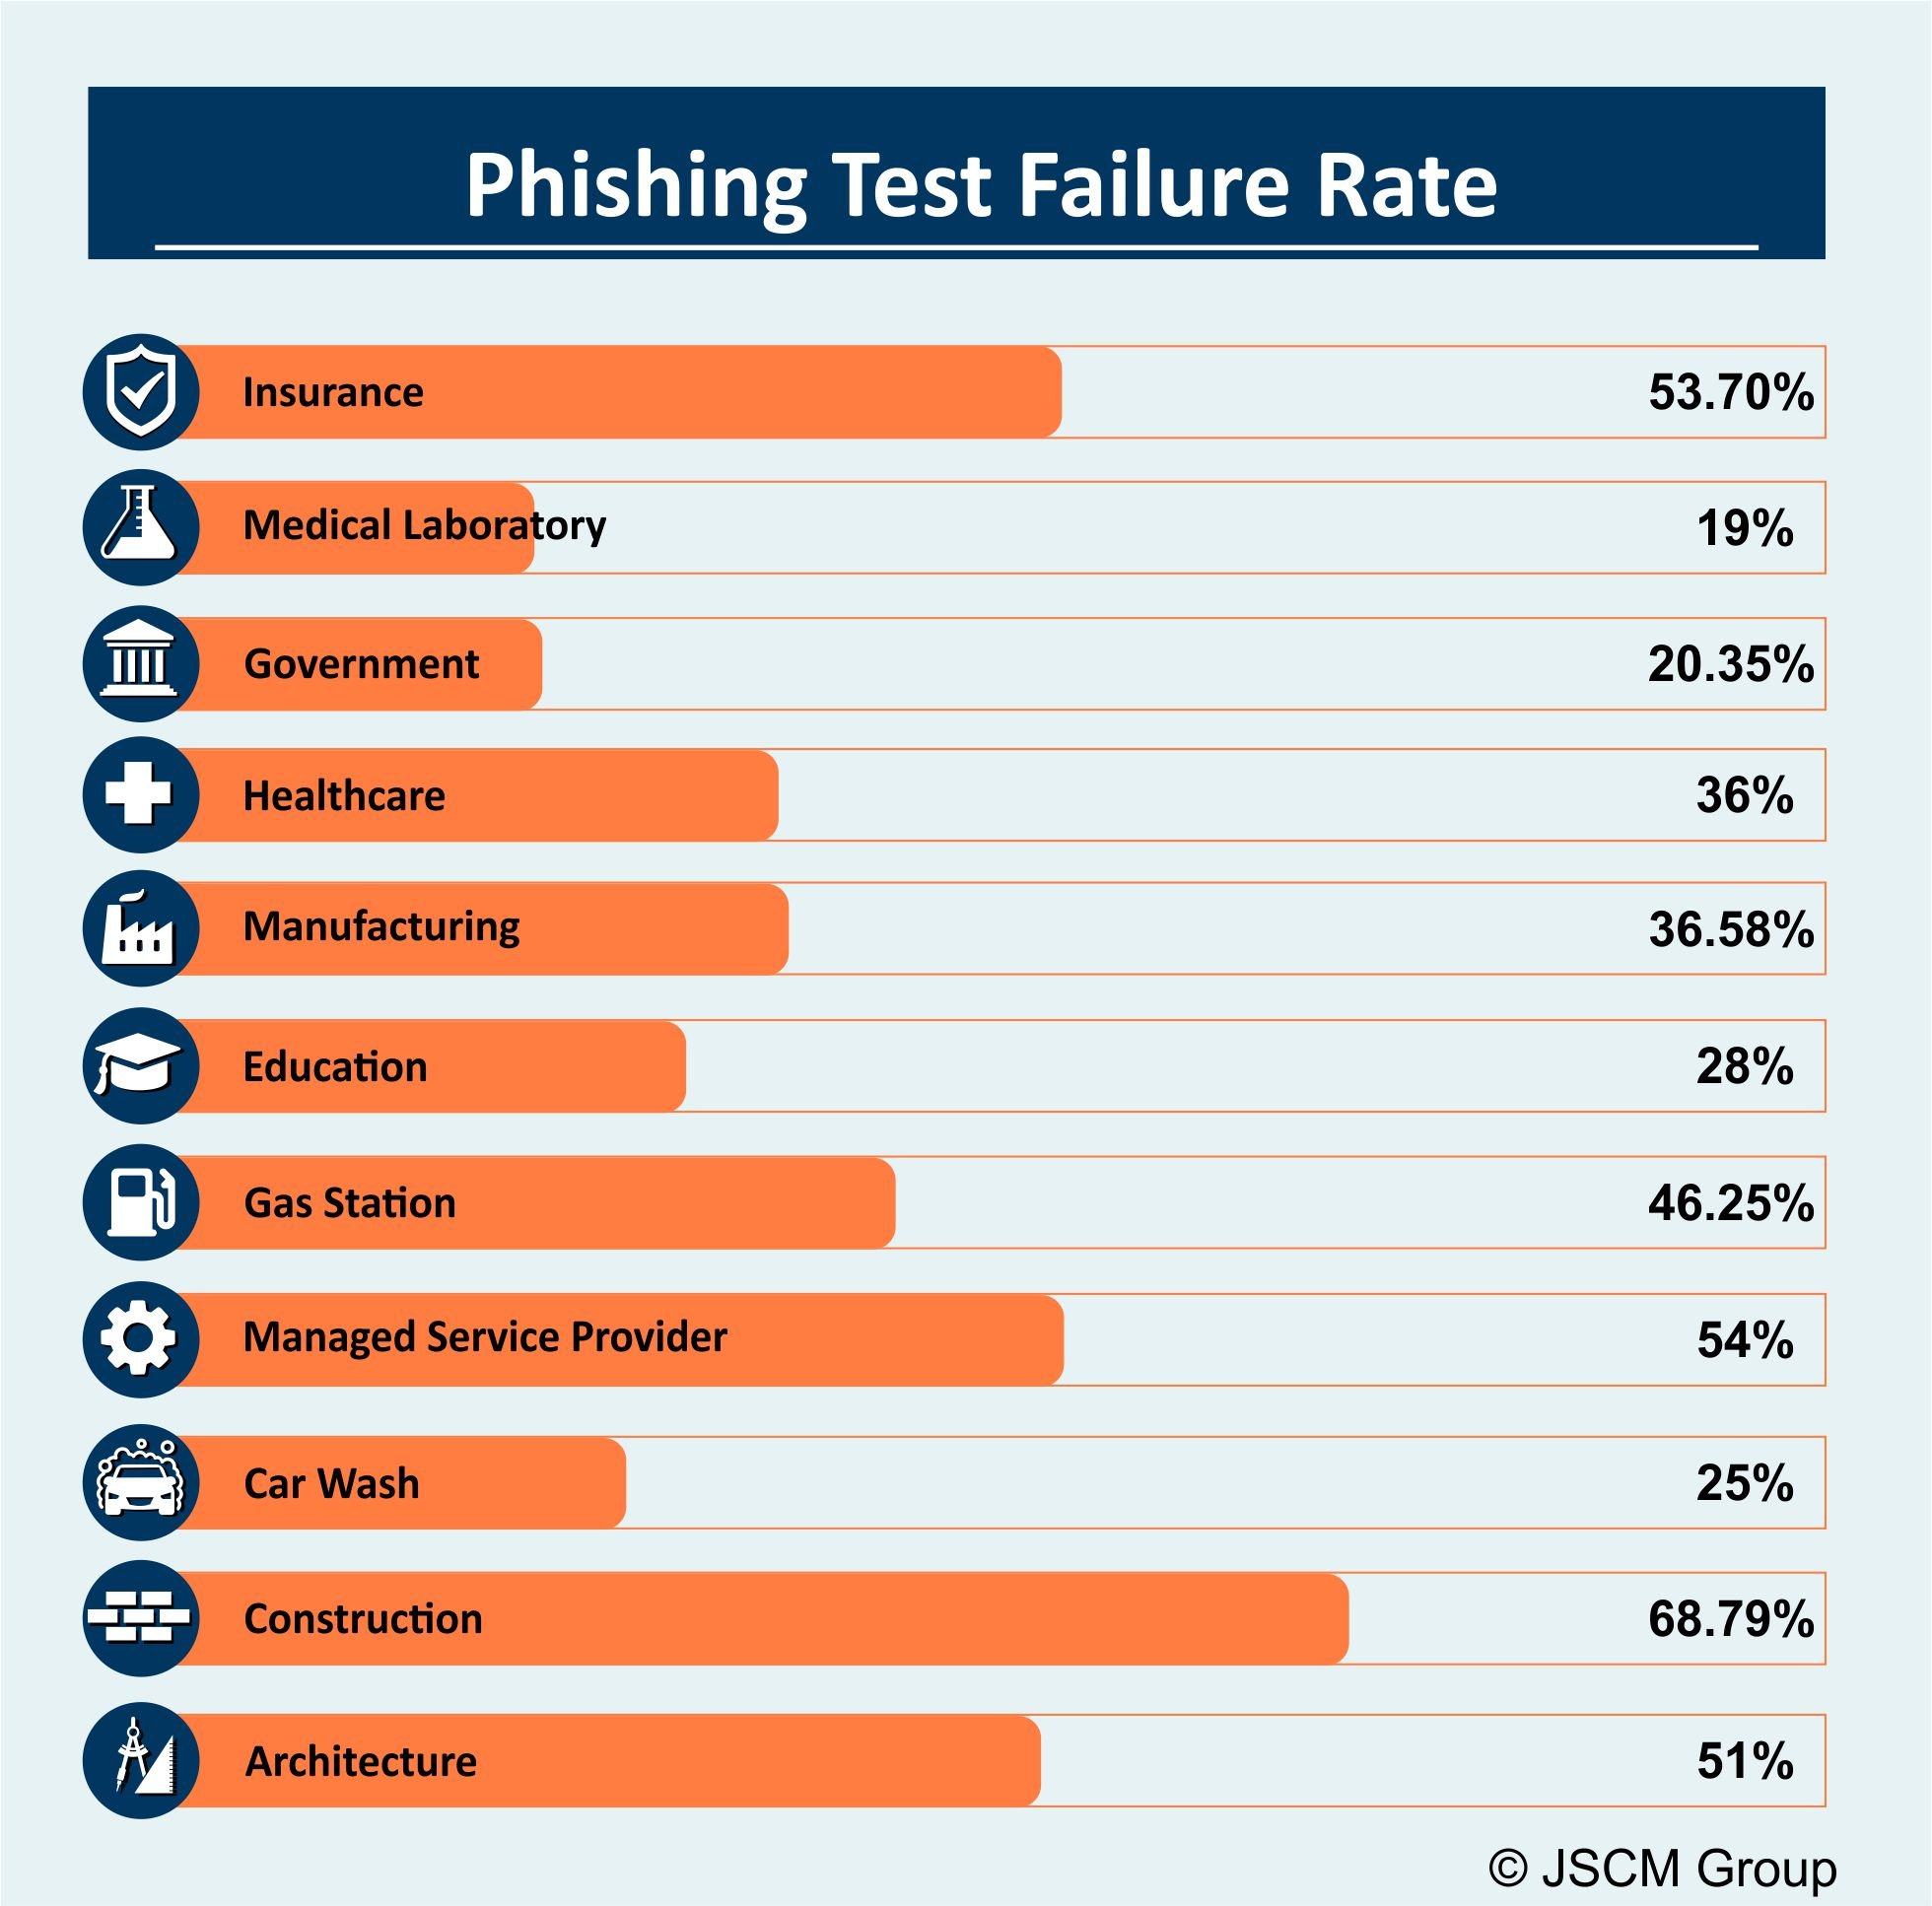 Spear Phishing test failure rate statistics by industry.